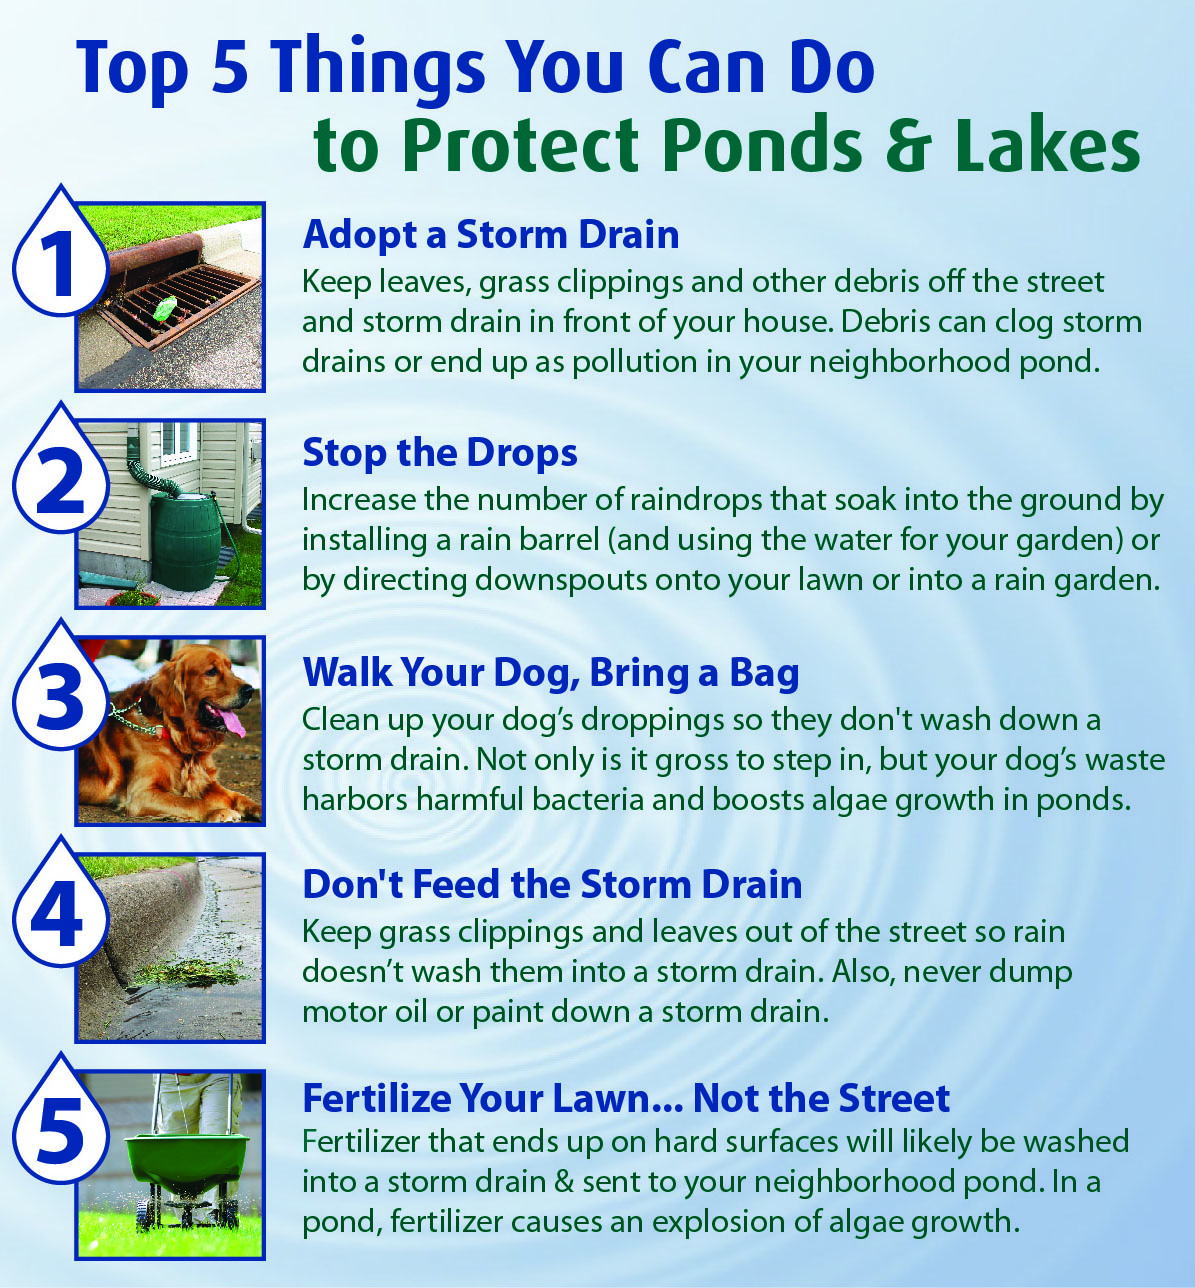 Top 5 Things for Lakes Ponds.jpg